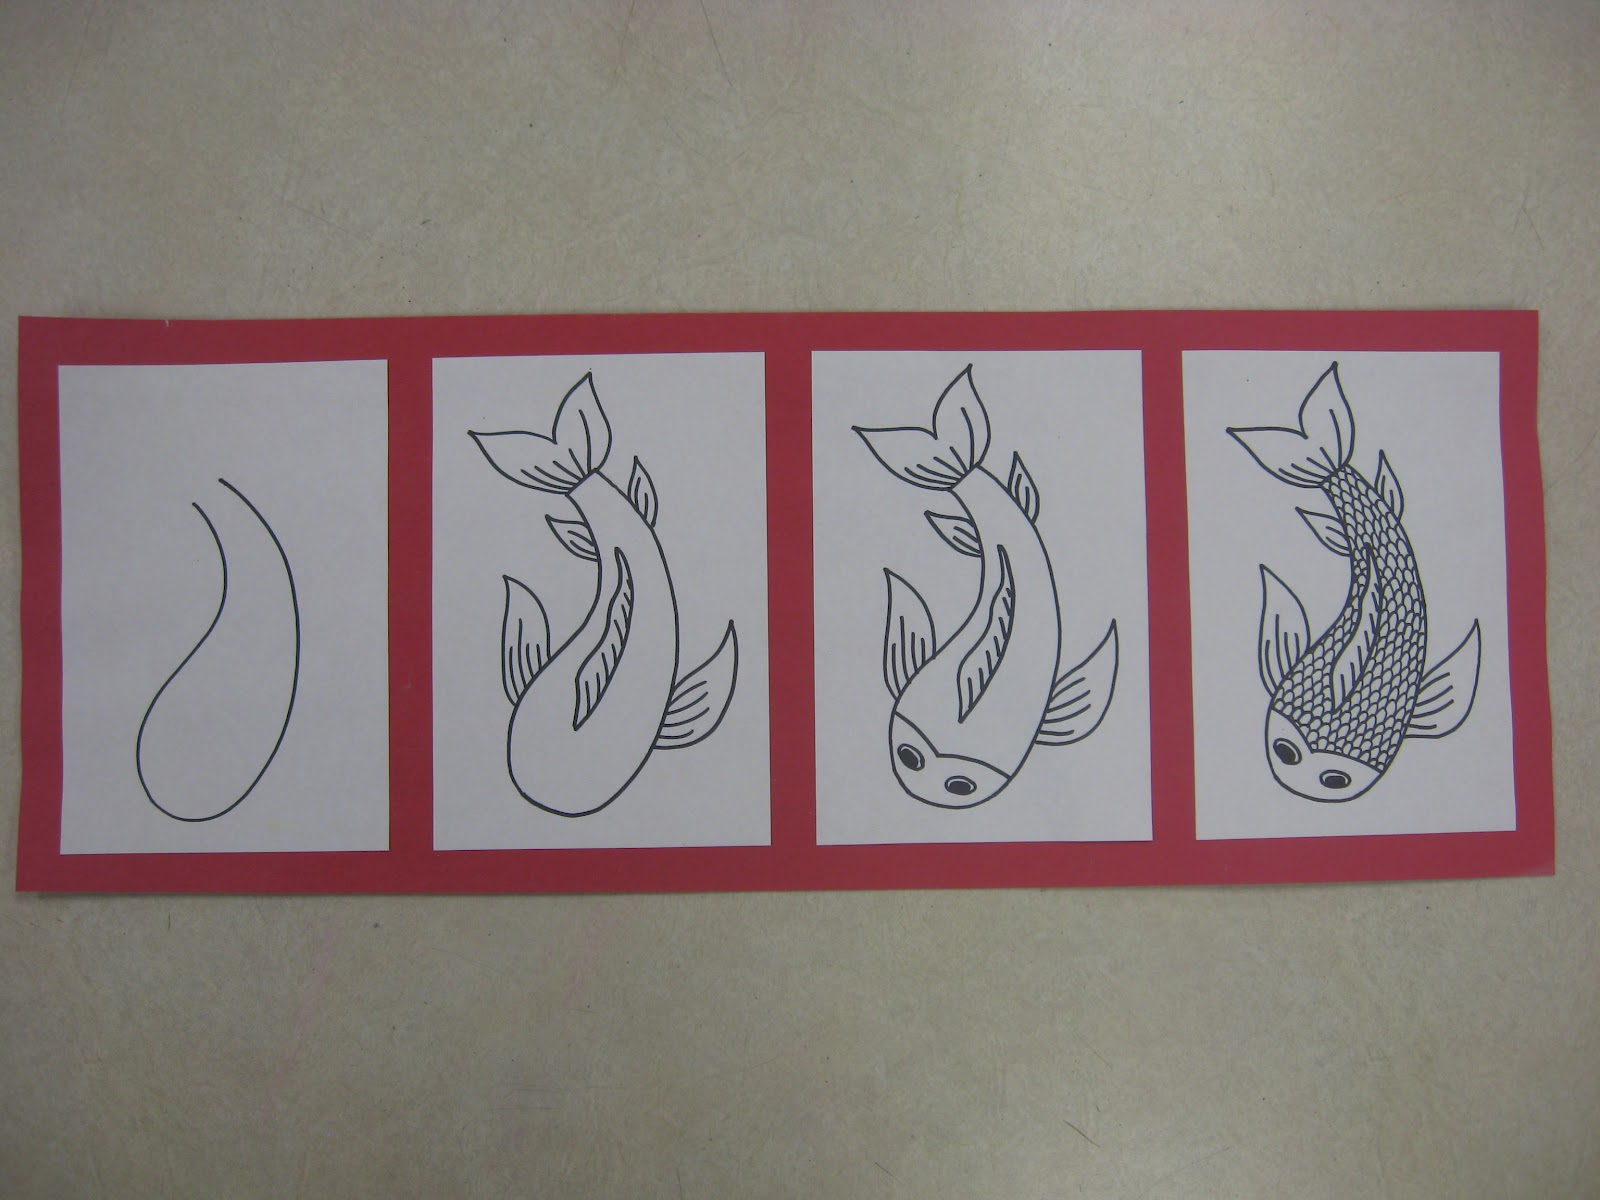 Miss young 39 s art room 6th grade koi fish printmaking for Looking after koi